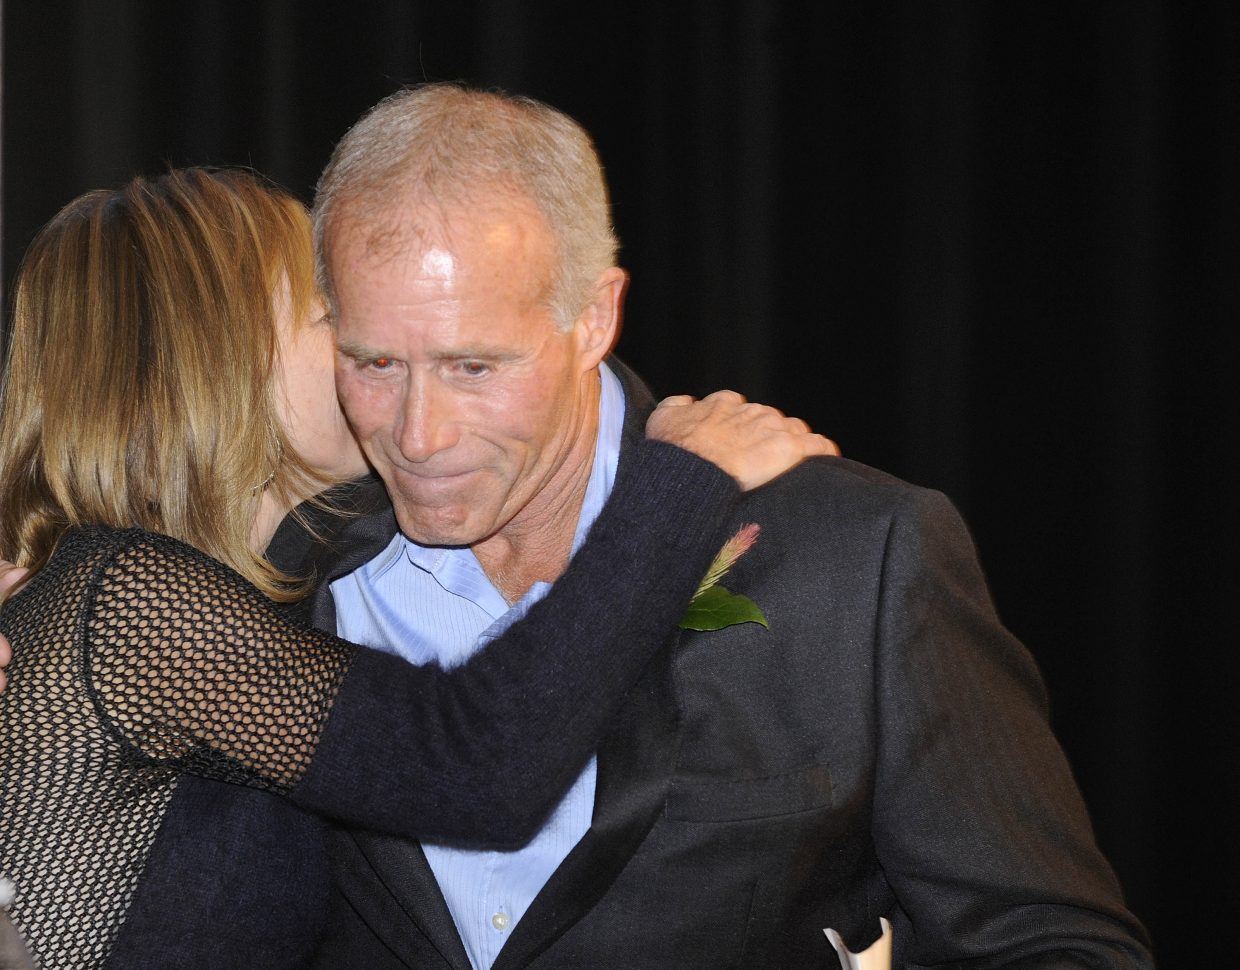 Business Person of the Year Ed MacArthur is congratulated during the Navigator Awards on Friday night at the Strings Music Pavilion.